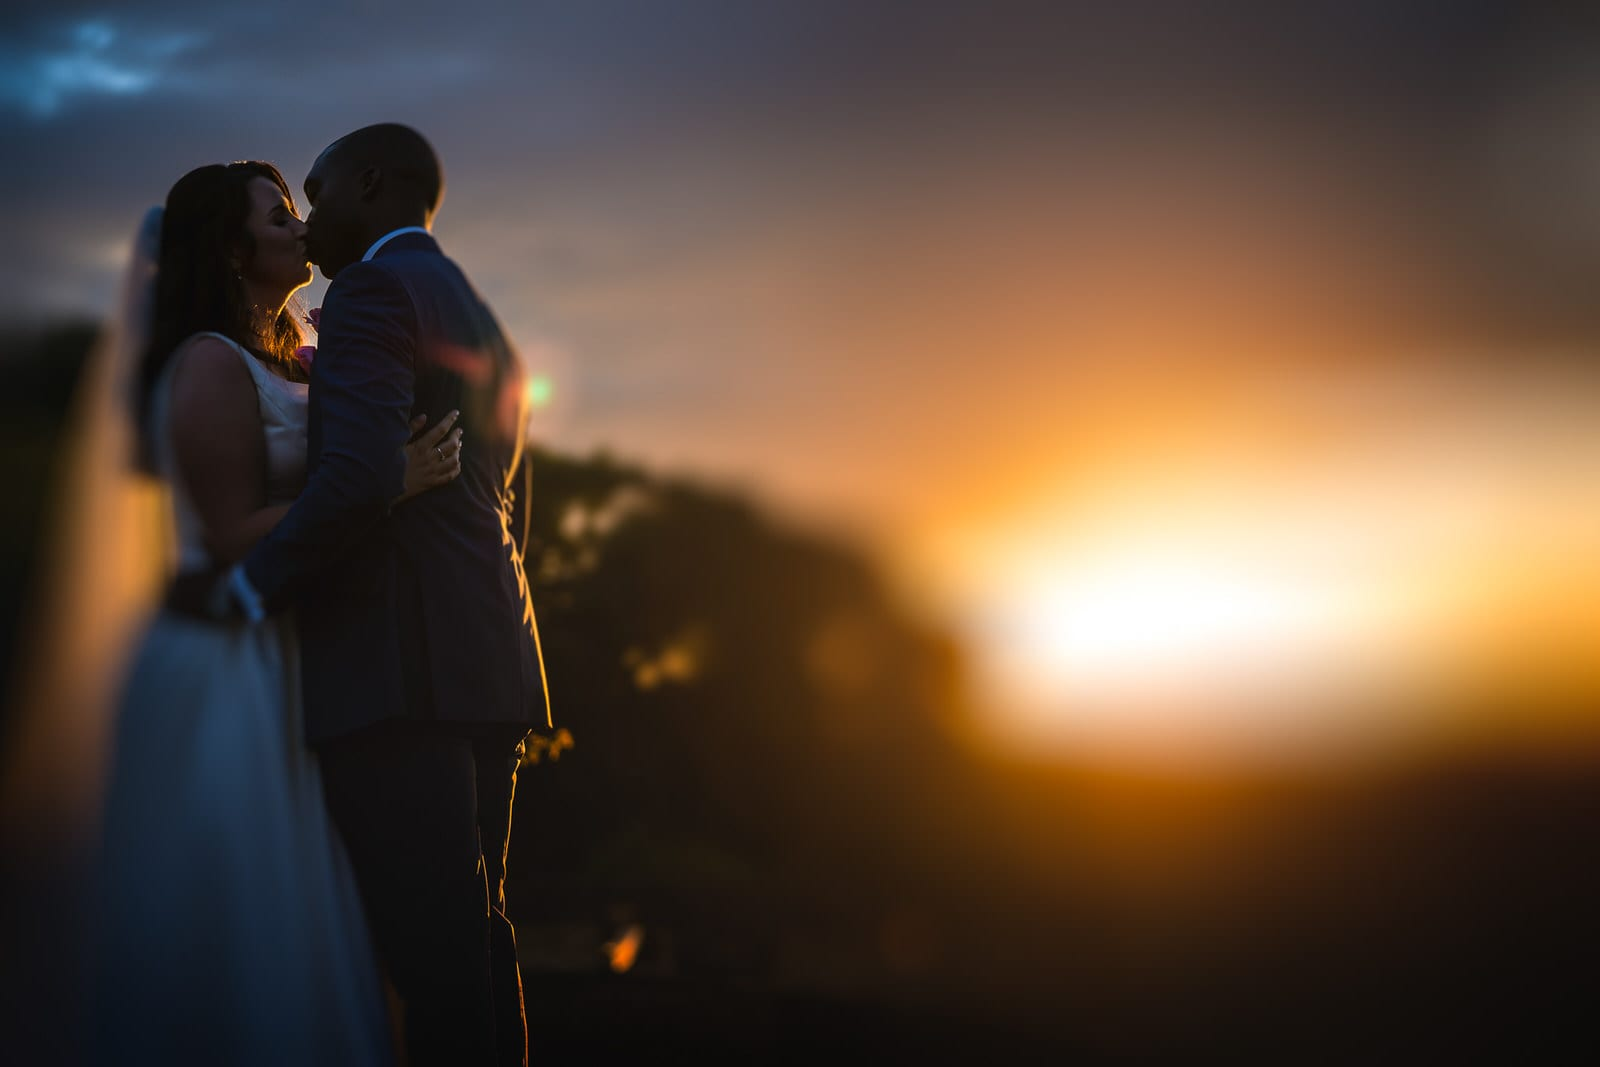 2018-warwickshire-wedding-photographer-S2-images-030